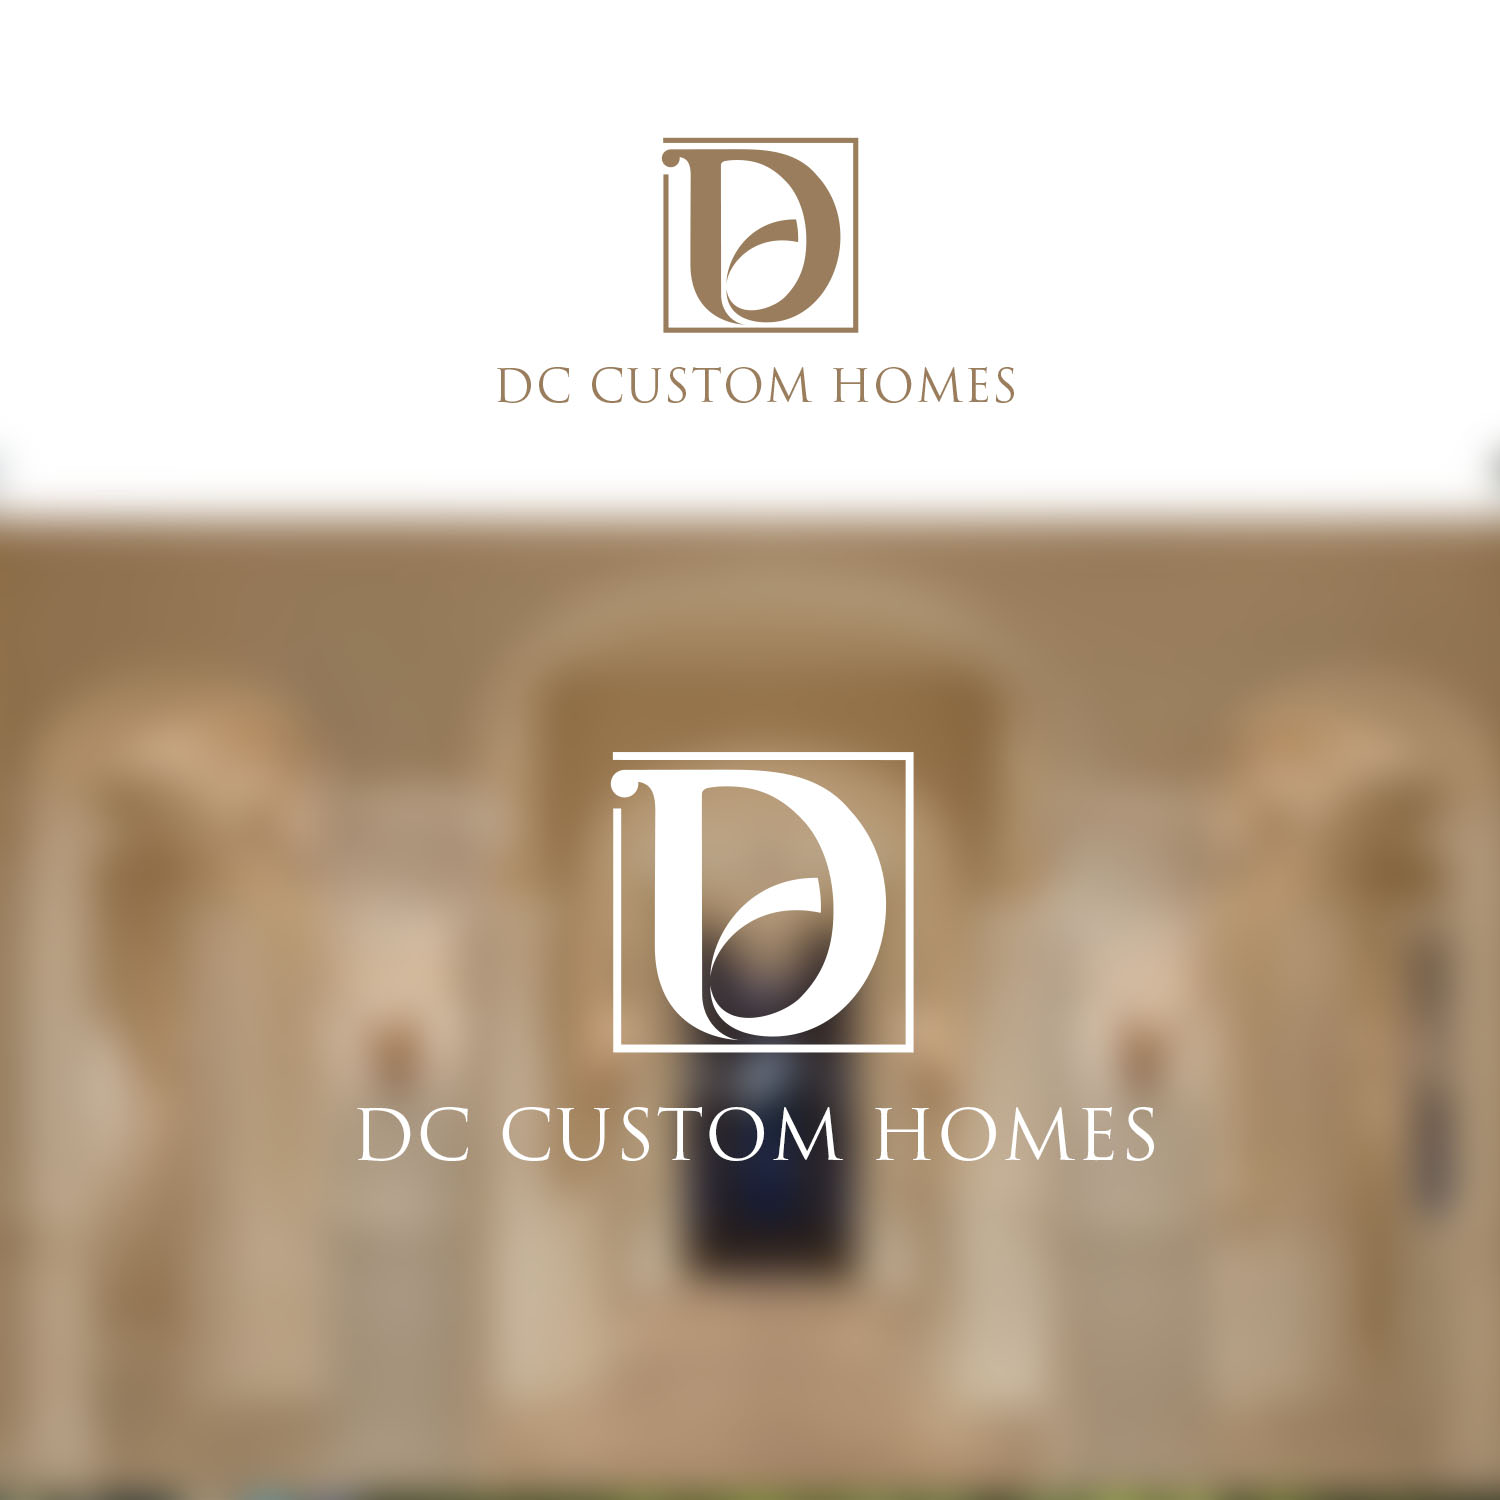 Logo Design by Private User - Entry No. 161 in the Logo Design Contest Creative Logo Design for DC Custom Homes.